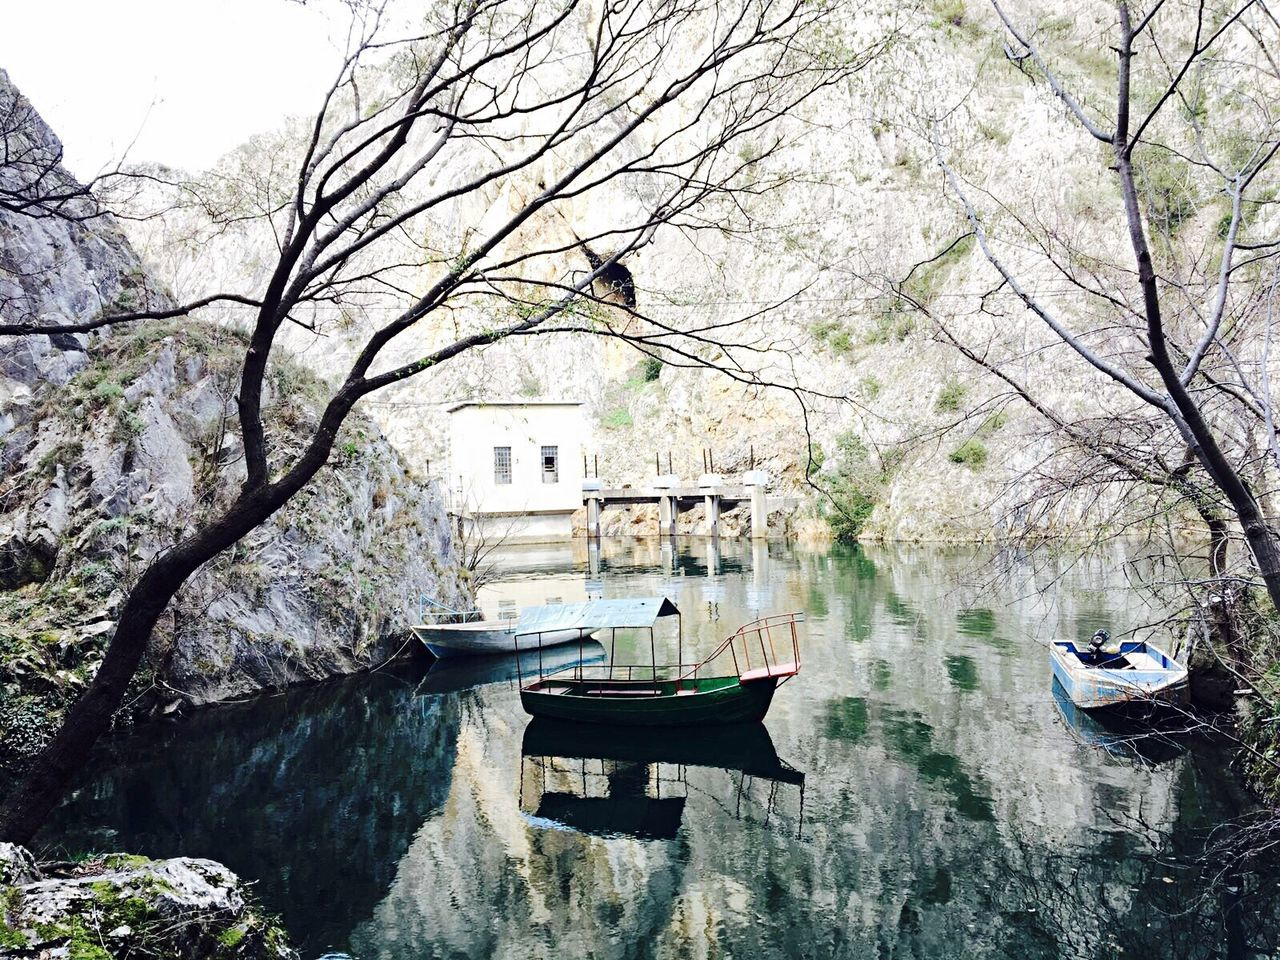 Natural 🍃 Tree Water Canal Beauty In Nature Nautical Vessel Reflection Transportation Nature No People Outdoors Day Built Structure Tranquility Architecture Lake Branch Bridge - Man Made Structure